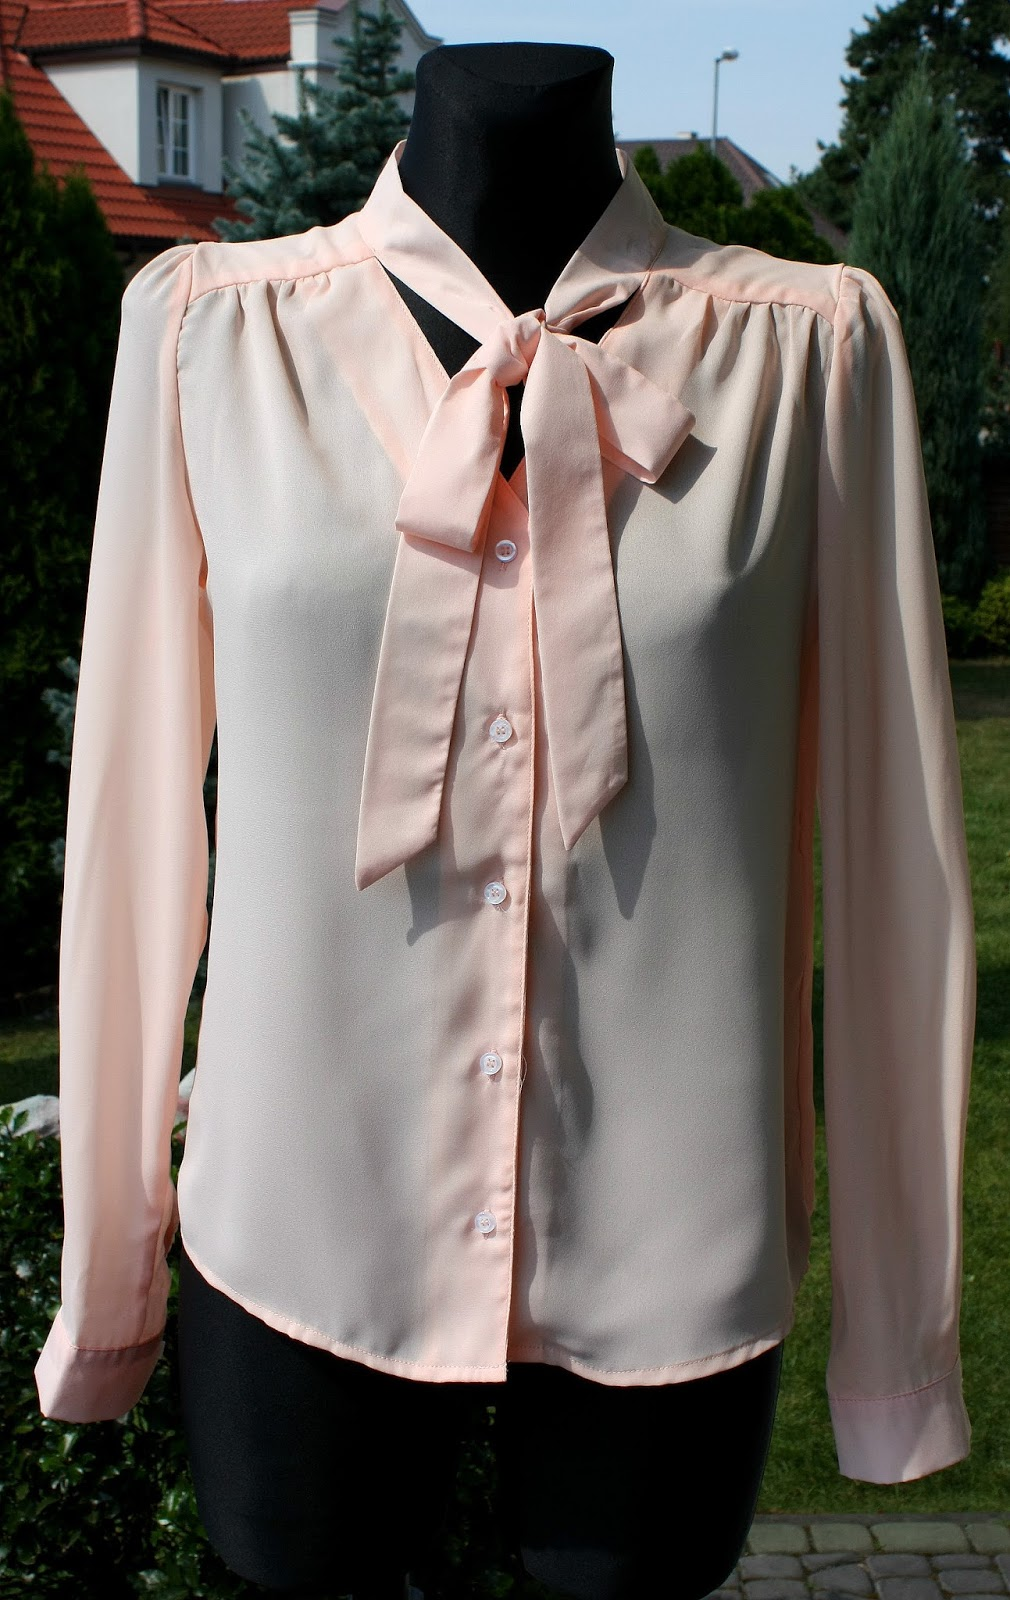 http://www.dresslily.com/bow-tie-collar-long-sleeve-solid-color-blouse-for-women-product1388338.html?lkid=1505435